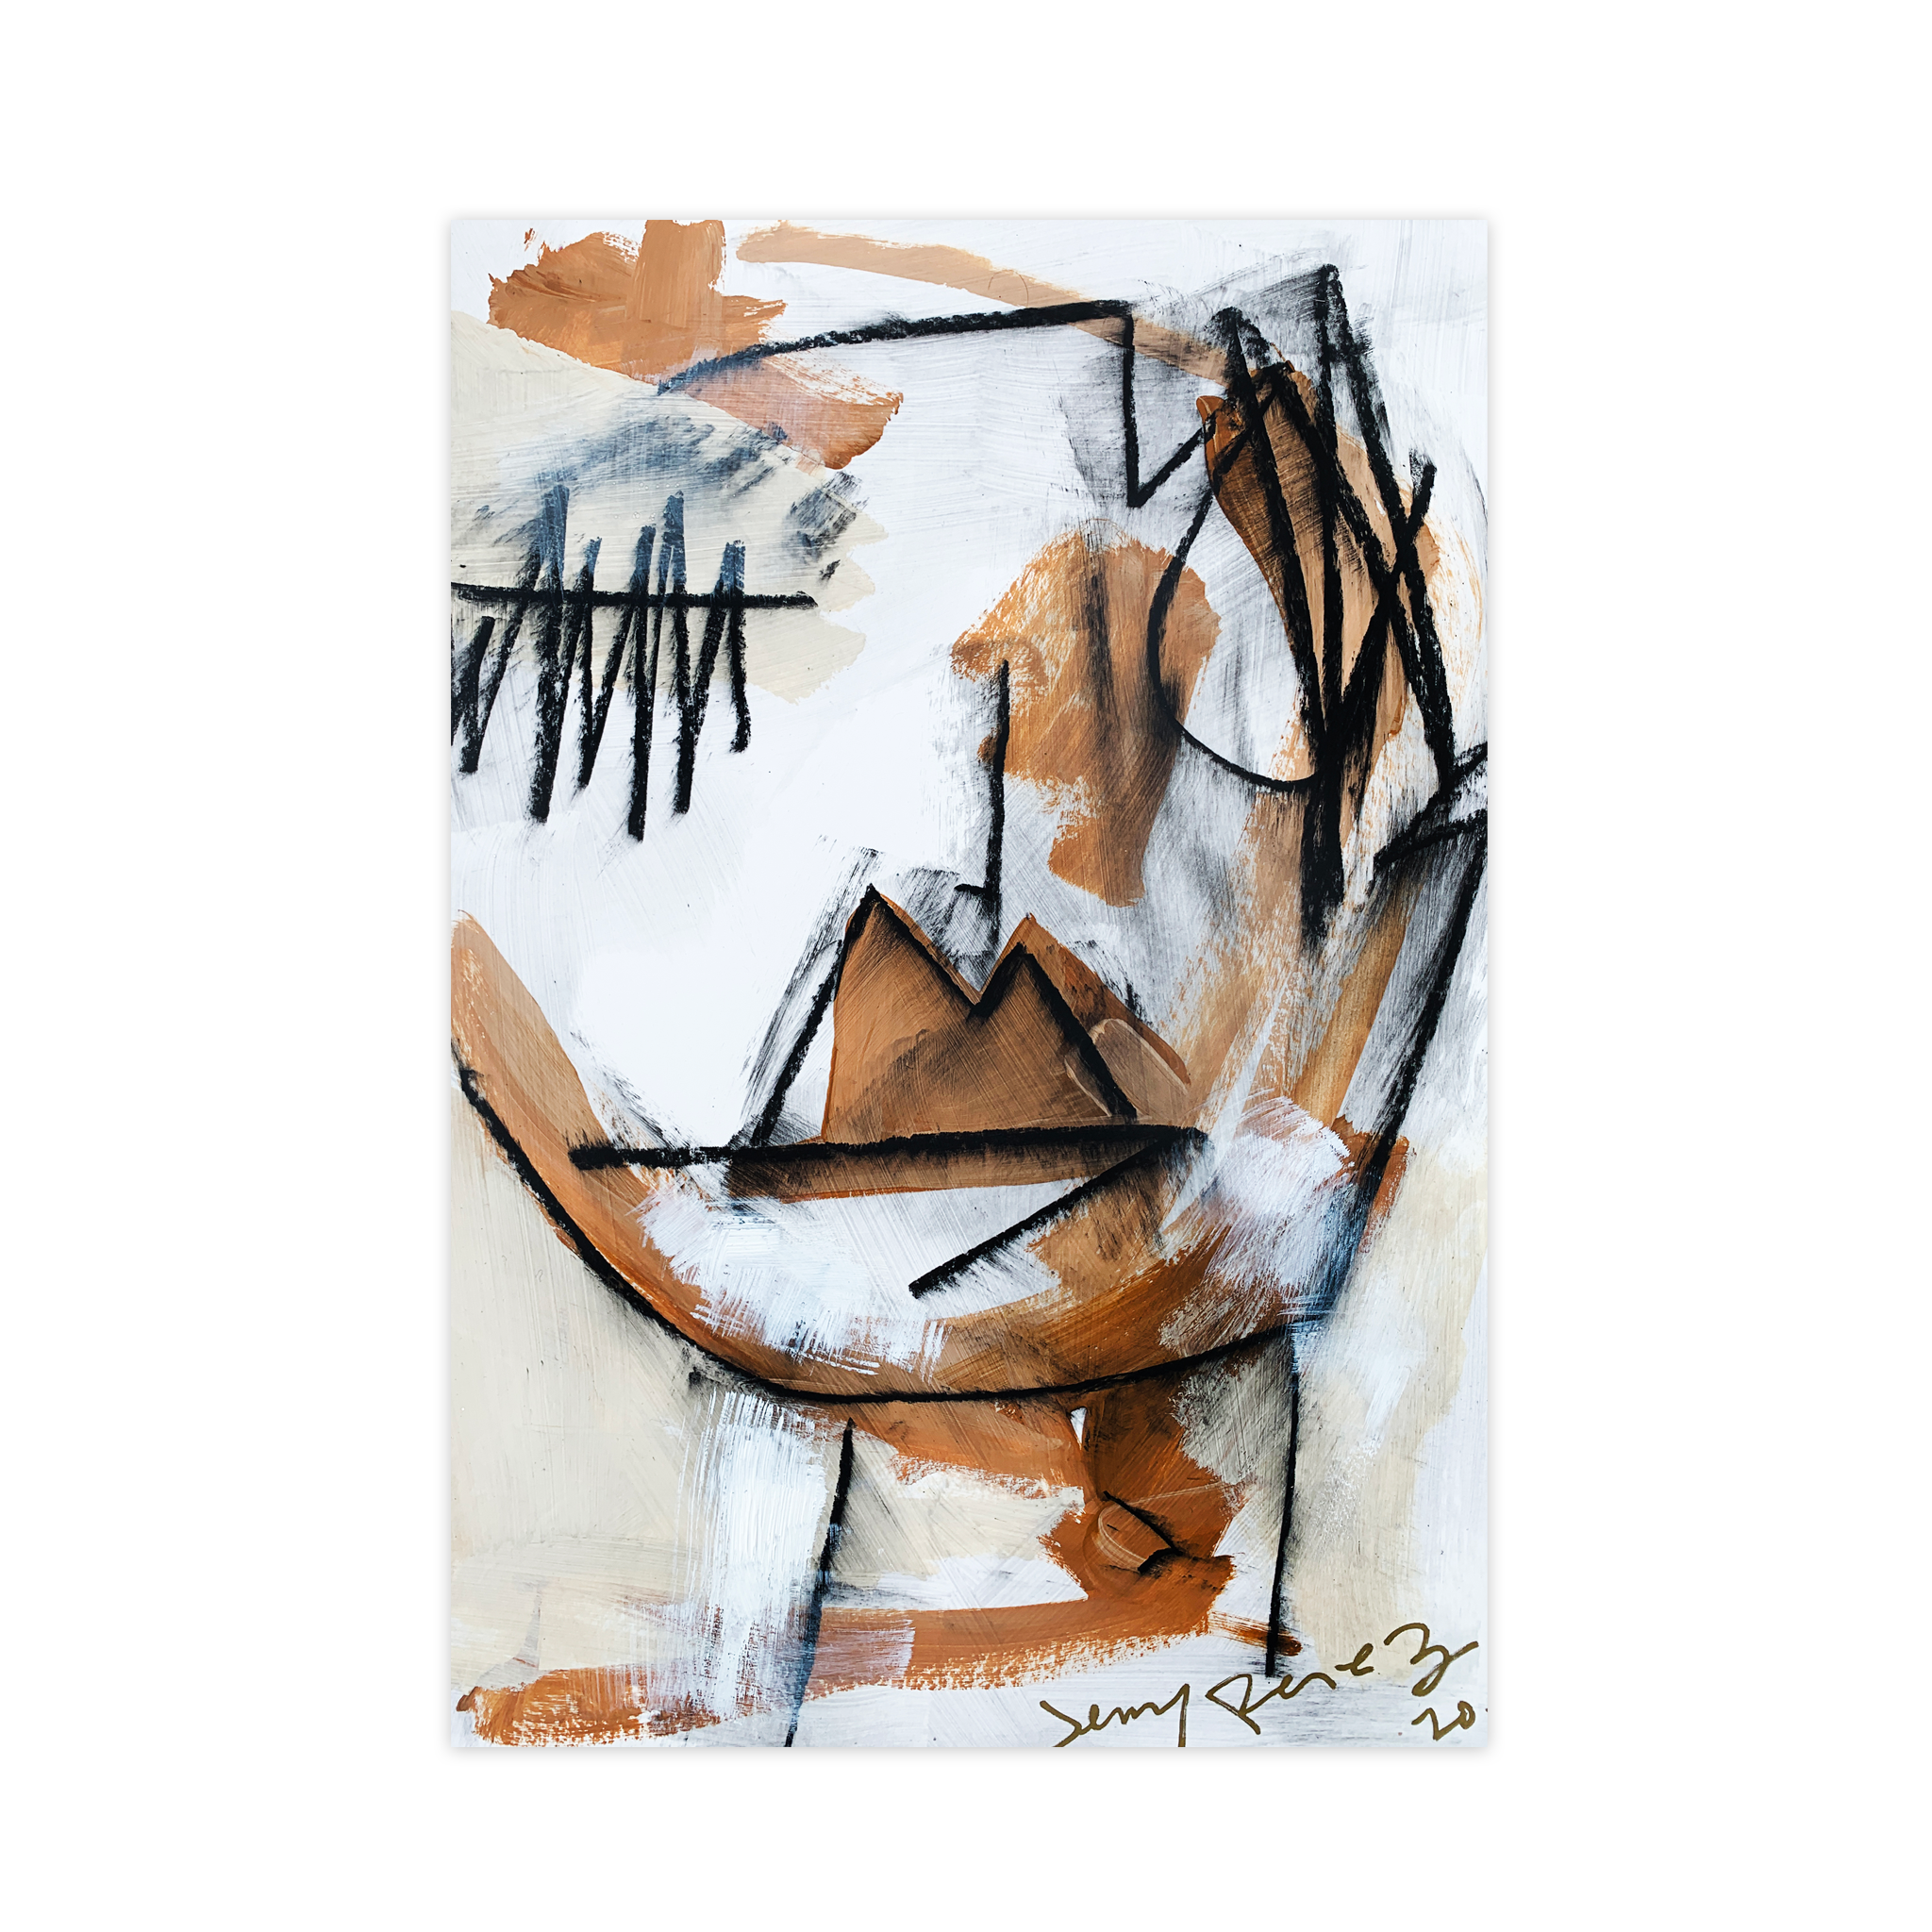 Strong Man - 18 x 12 inches. Acrylic and charcoal on watercolor paper.